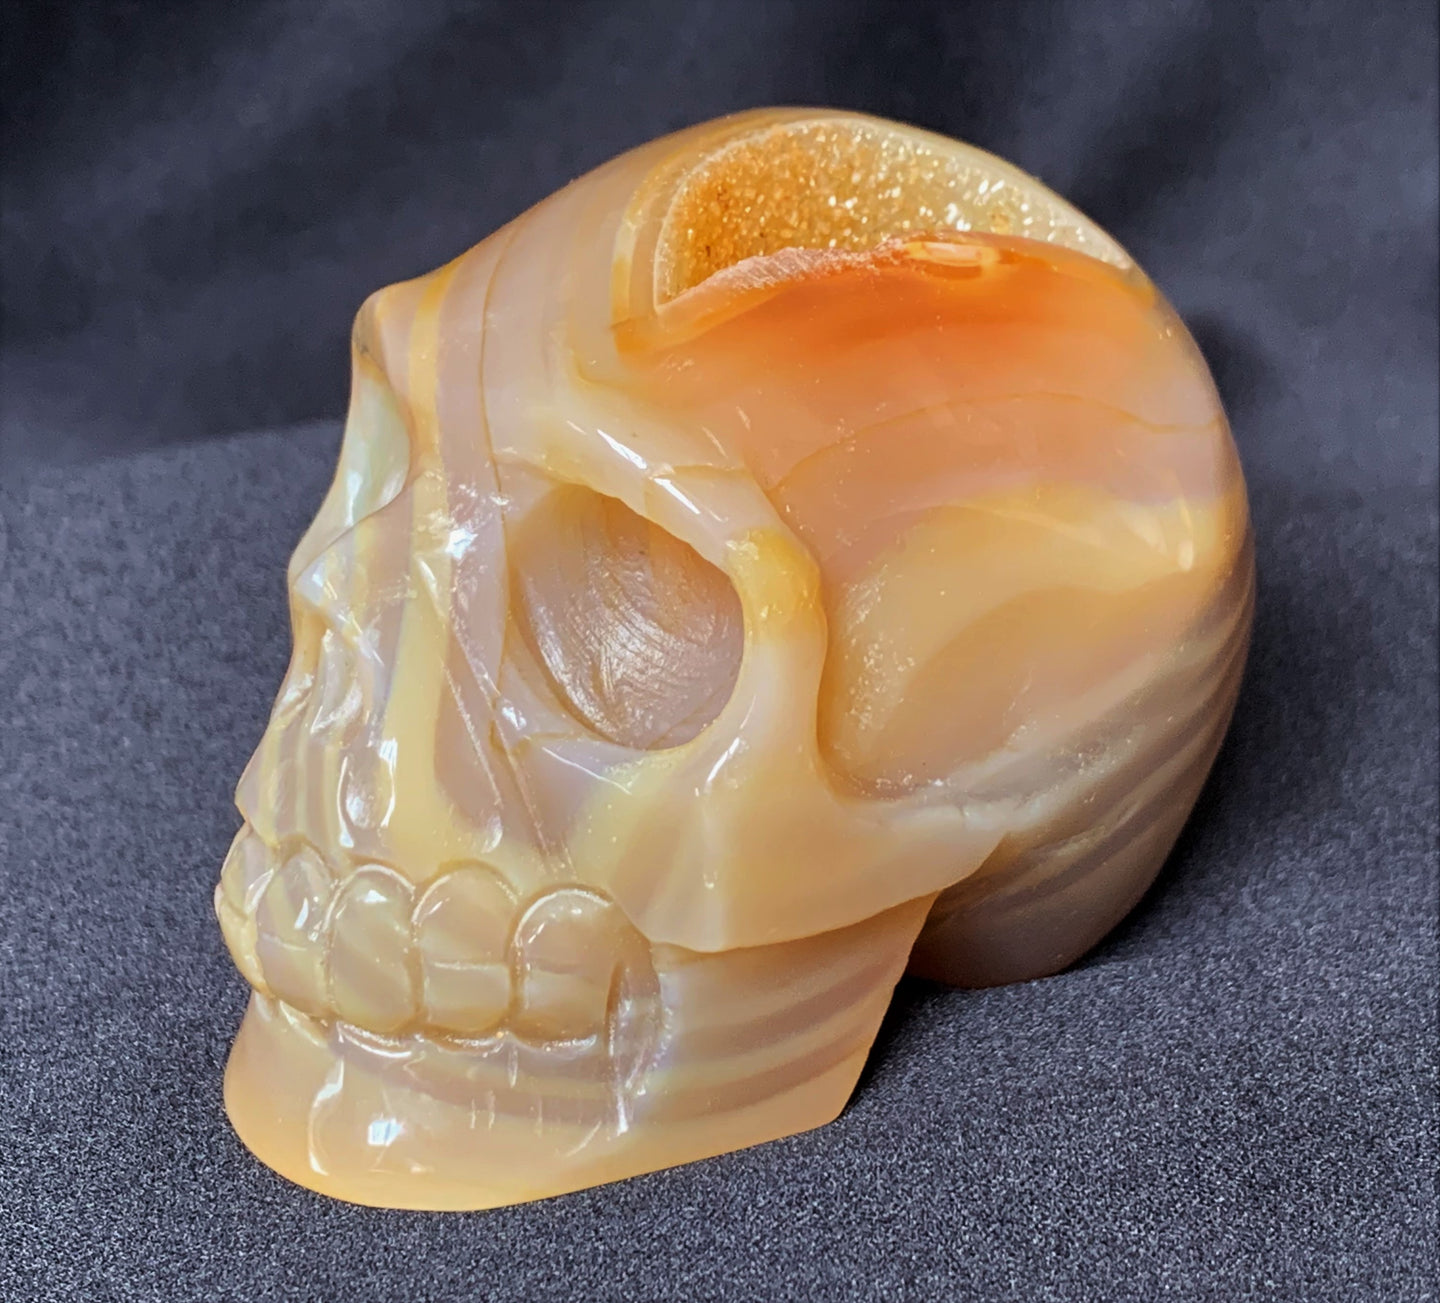 Orange Lace Agate Quartz Geode Hand Carved Realistic Crystal Human Skull Sculpture AG10201